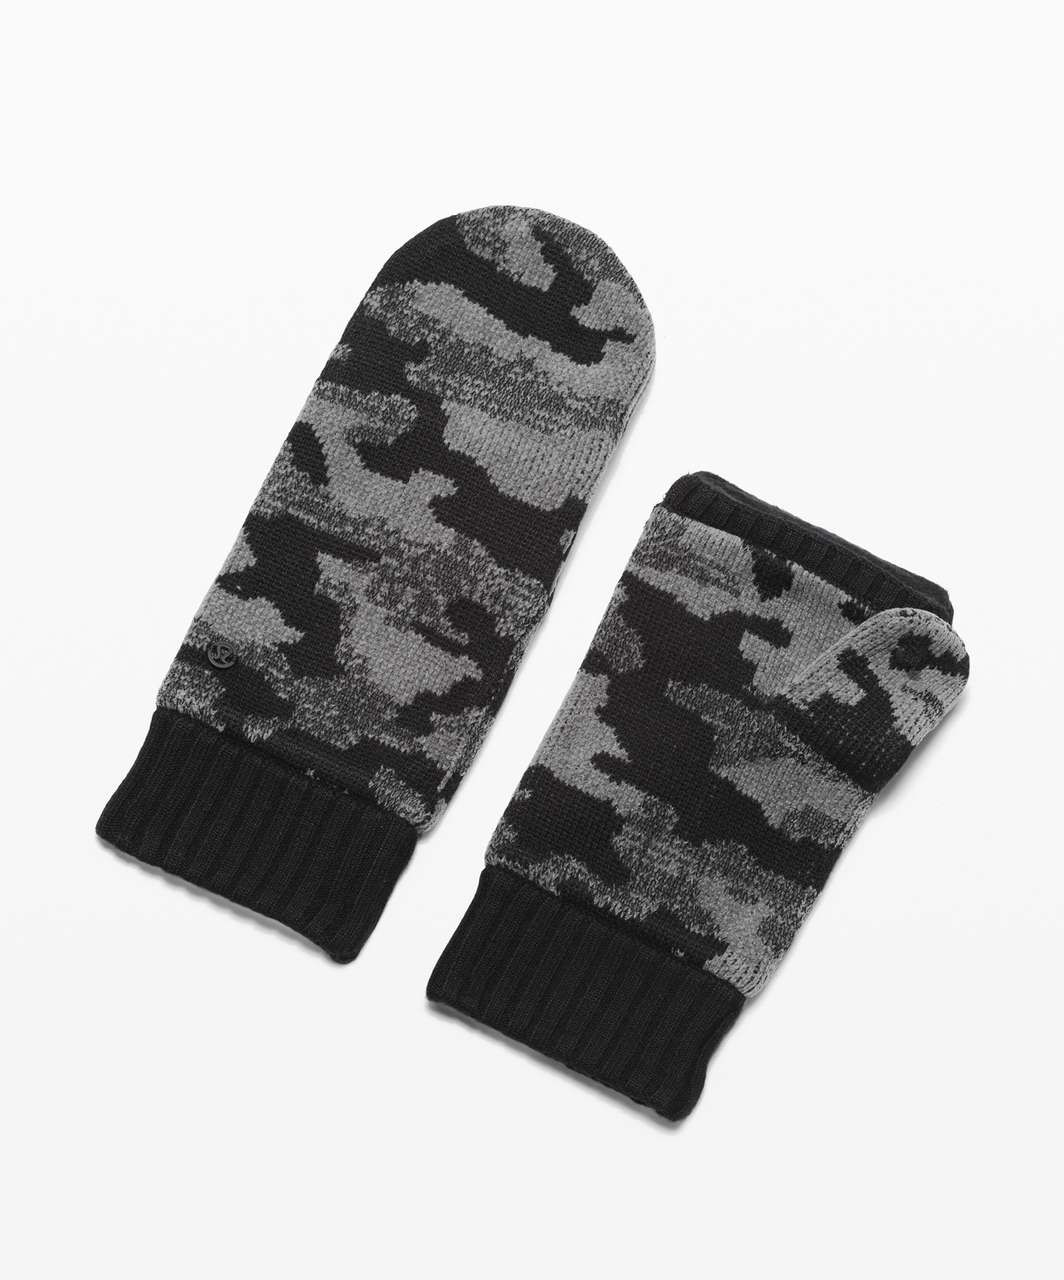 Lululemon Room for Warmth Mitten - Black / Asphalt Grey